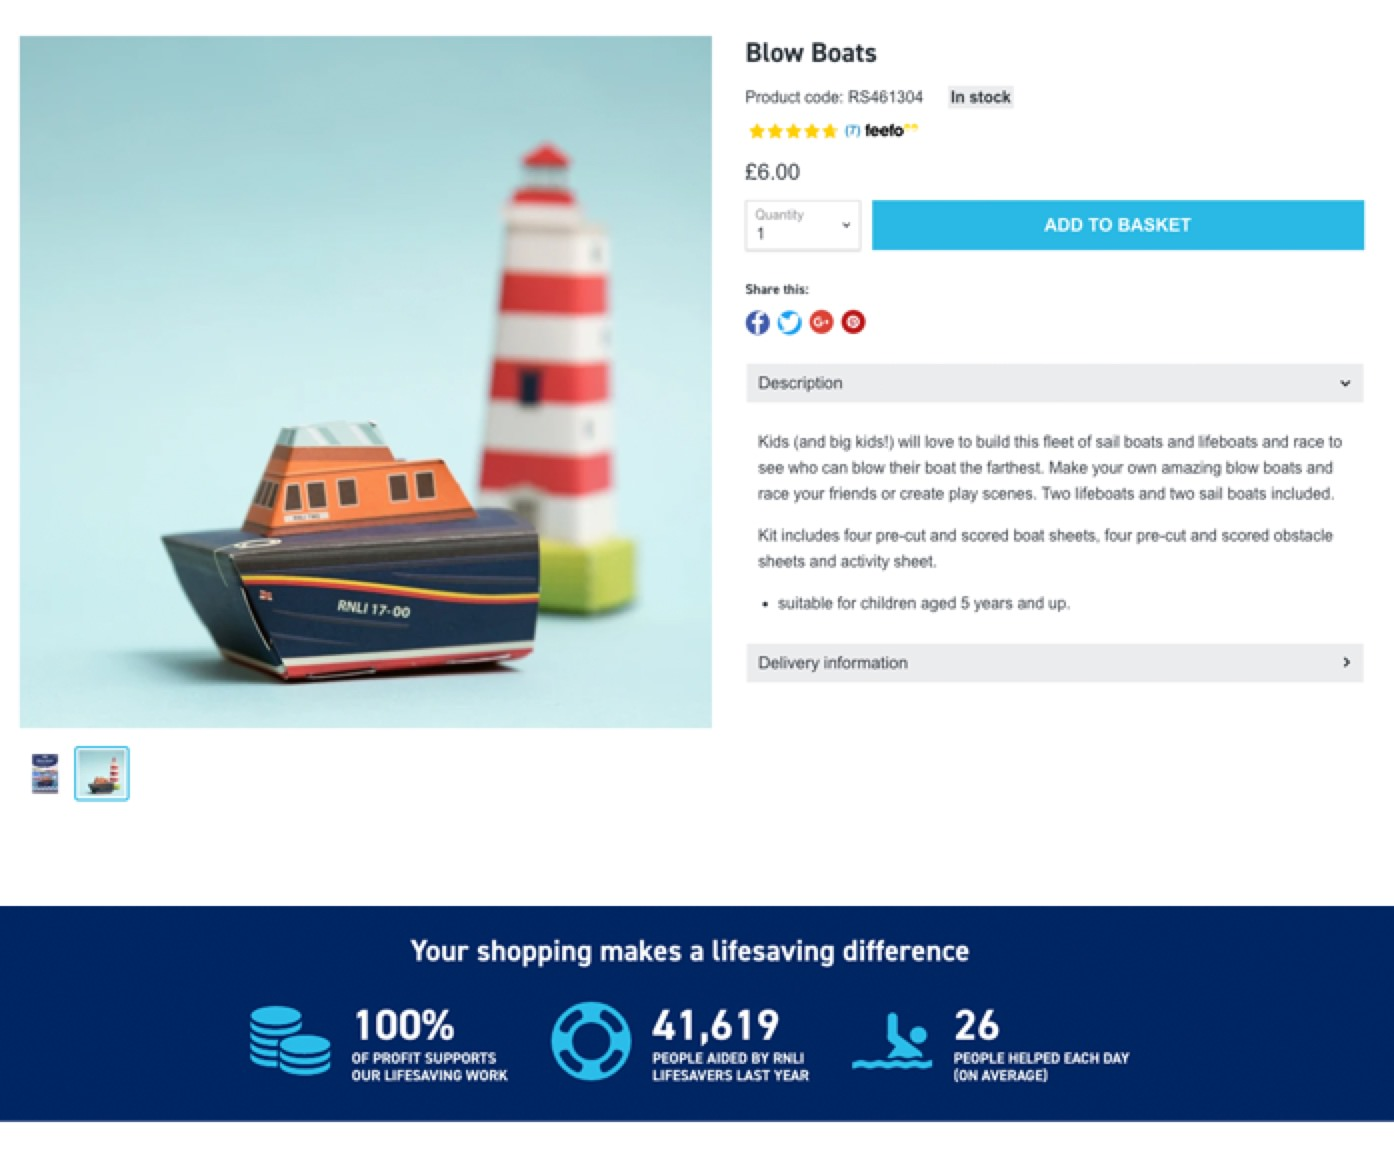 RNLI product page of a Blow Boat